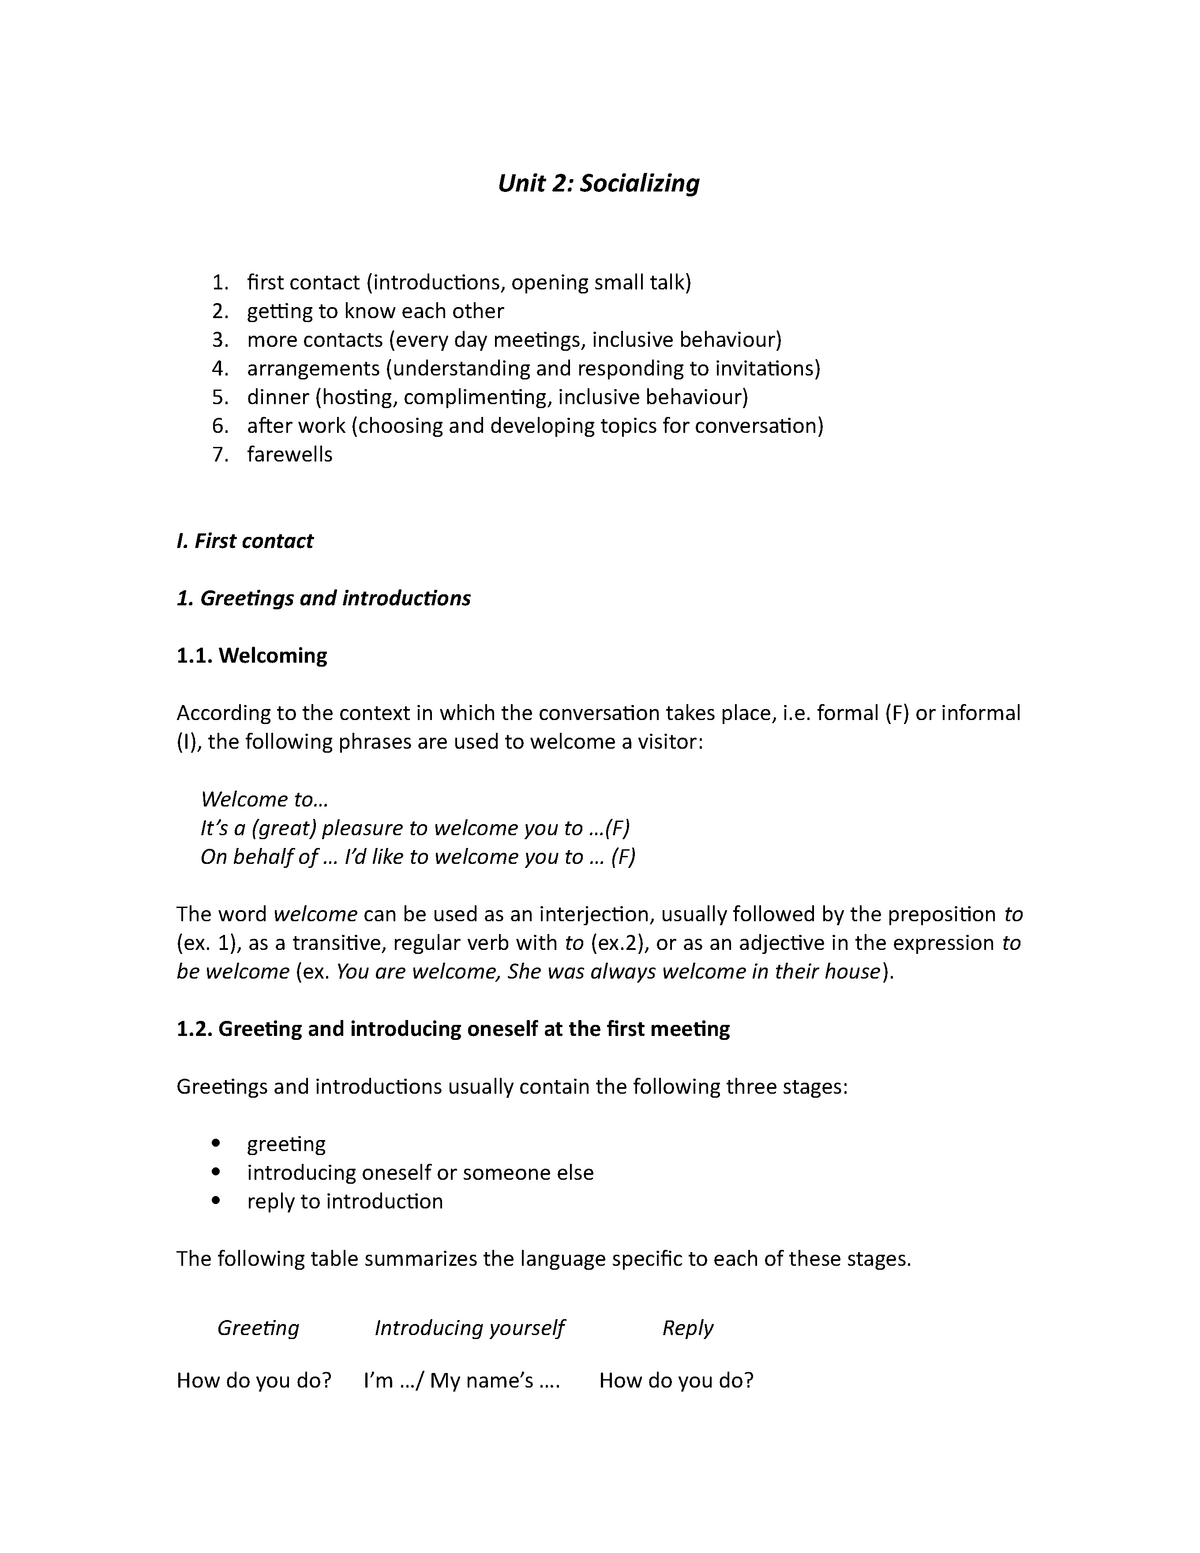 Curs - Socializing - Lecture notes 2 - S 01 O L 36